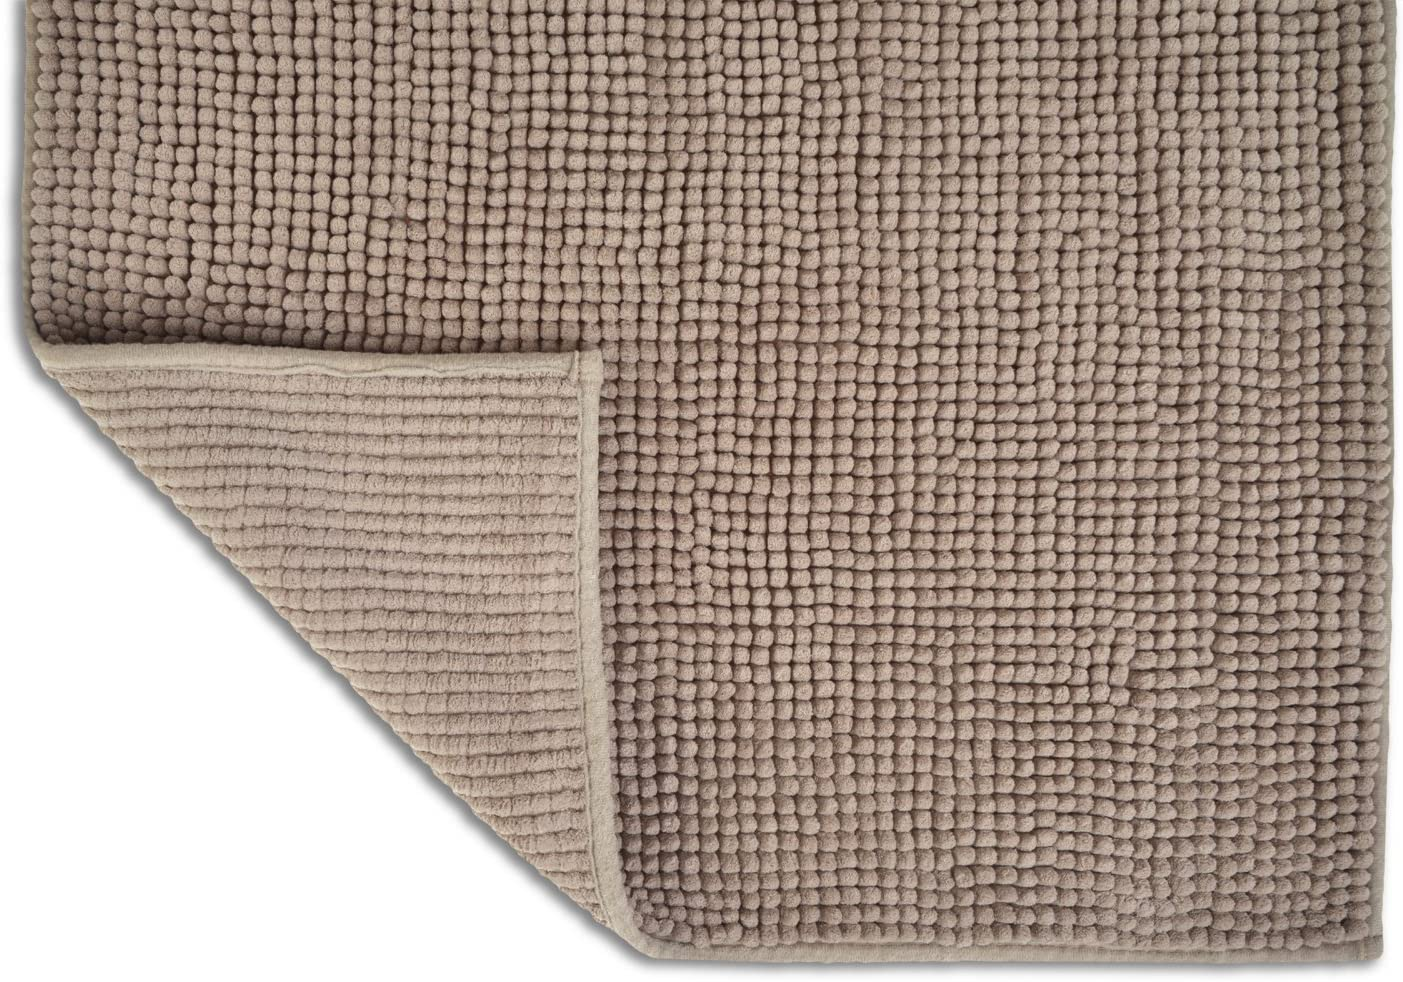 Lightweight Washable Mat for Pets 100/% Machine-Washable and Tumble Dry Safe Non-slip backing and Highly Absorbent Small and Lightweight Pet Bedding Allure Bath Fashions Phoebe Pet Mats